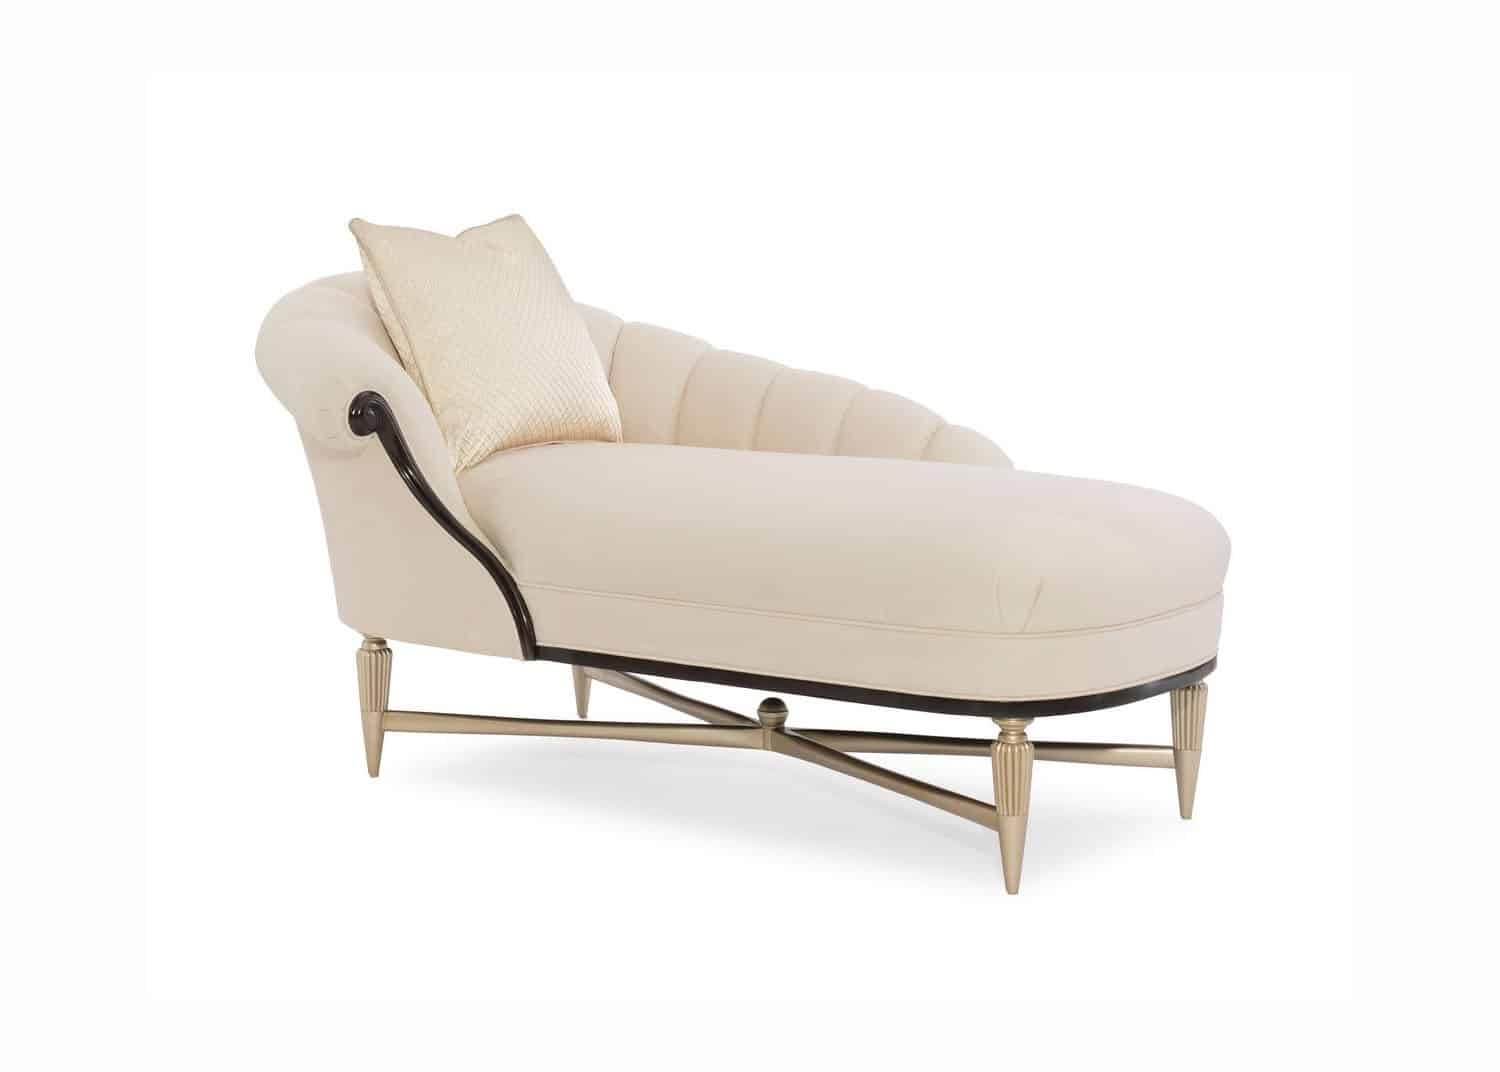 harlow chaise longue mobilart decor high end furniture